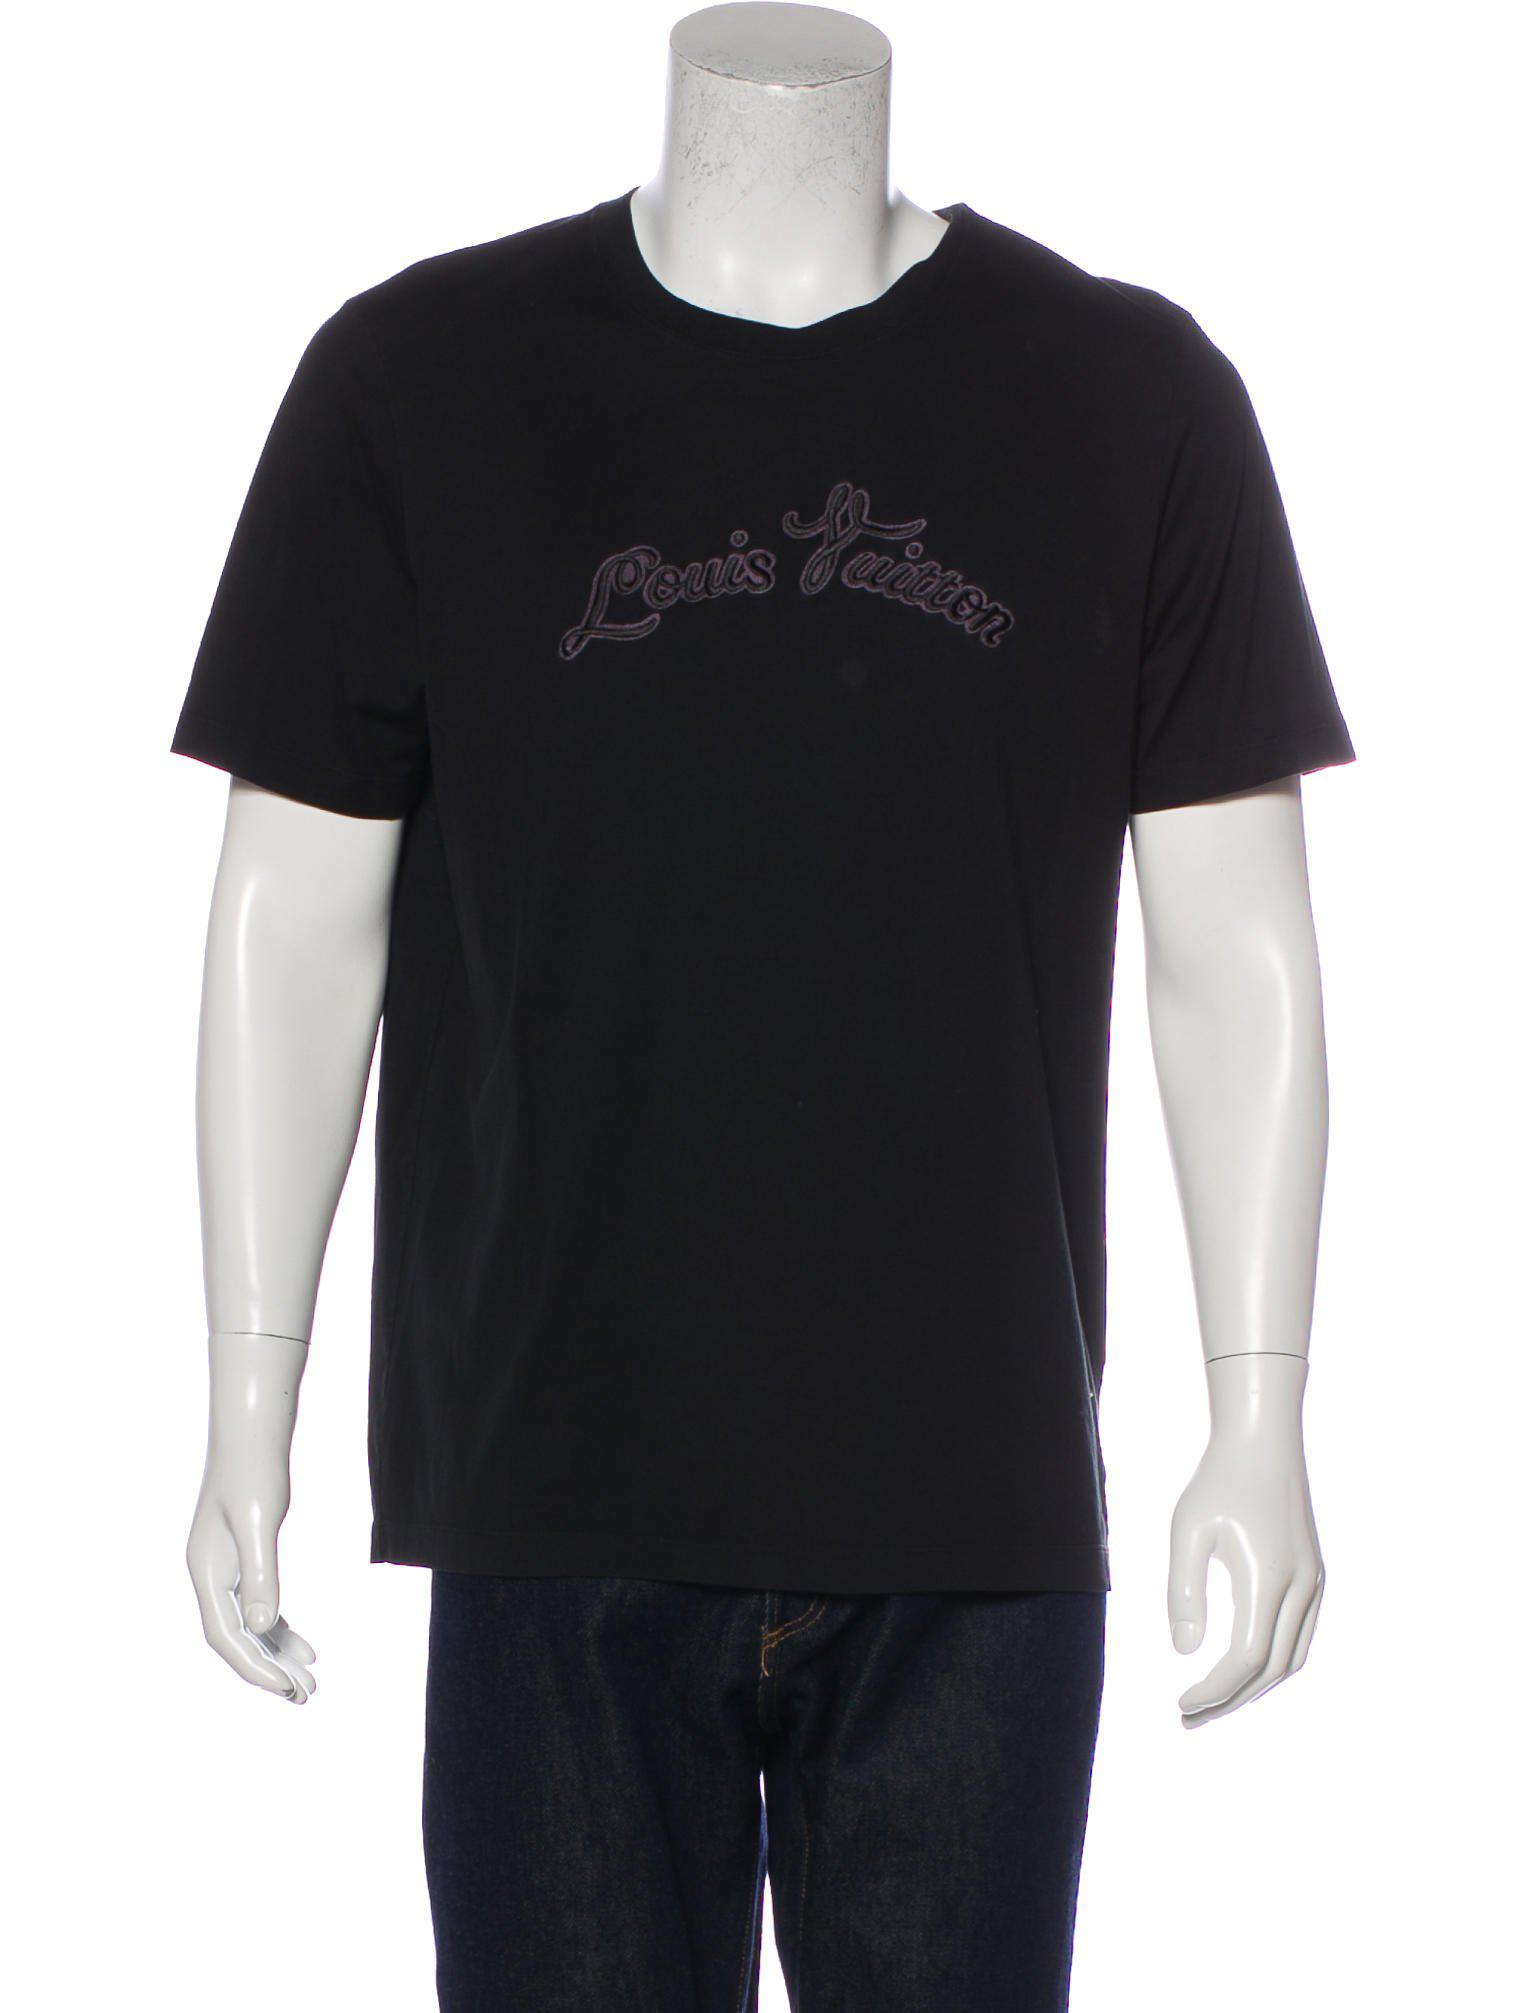 005d7870 Lyst - Louis Vuitton Logo Embroidered T-shirt in Black for Men